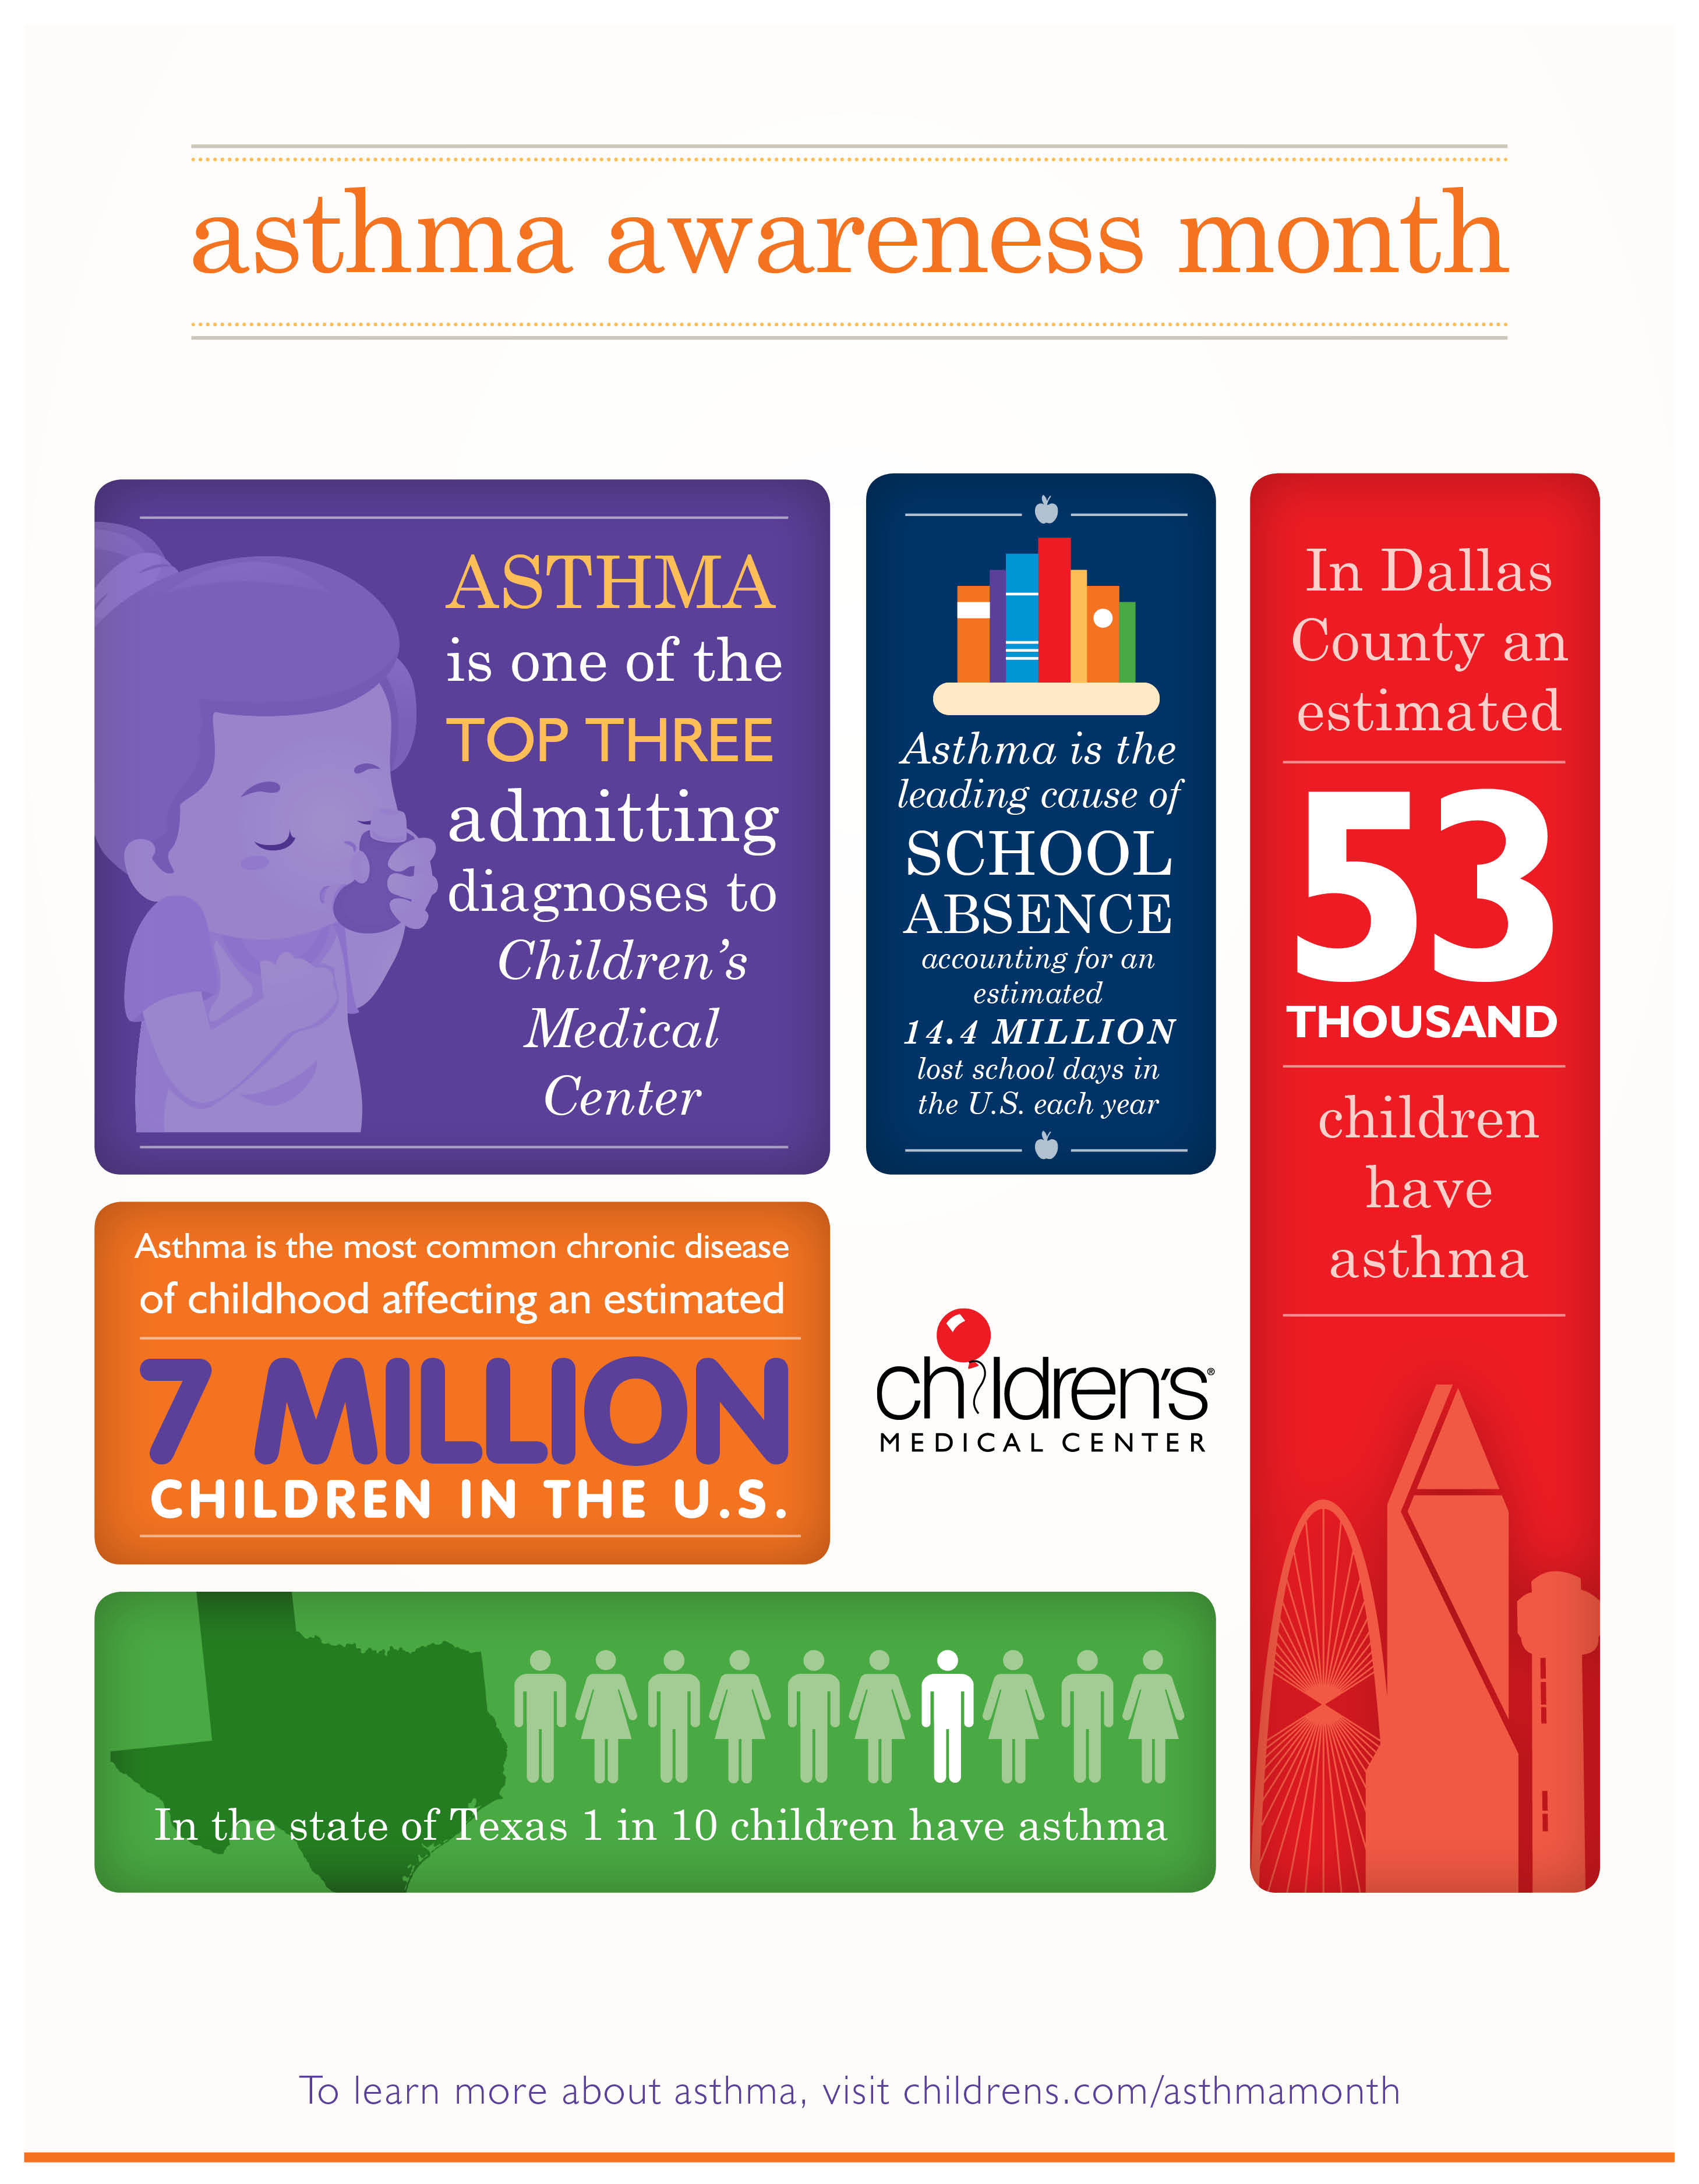 facts about asthma Asthma may develop due to an array of different reasons, the facts surrounding it are sufficient to highlight the seriousness here are facts about asthma.